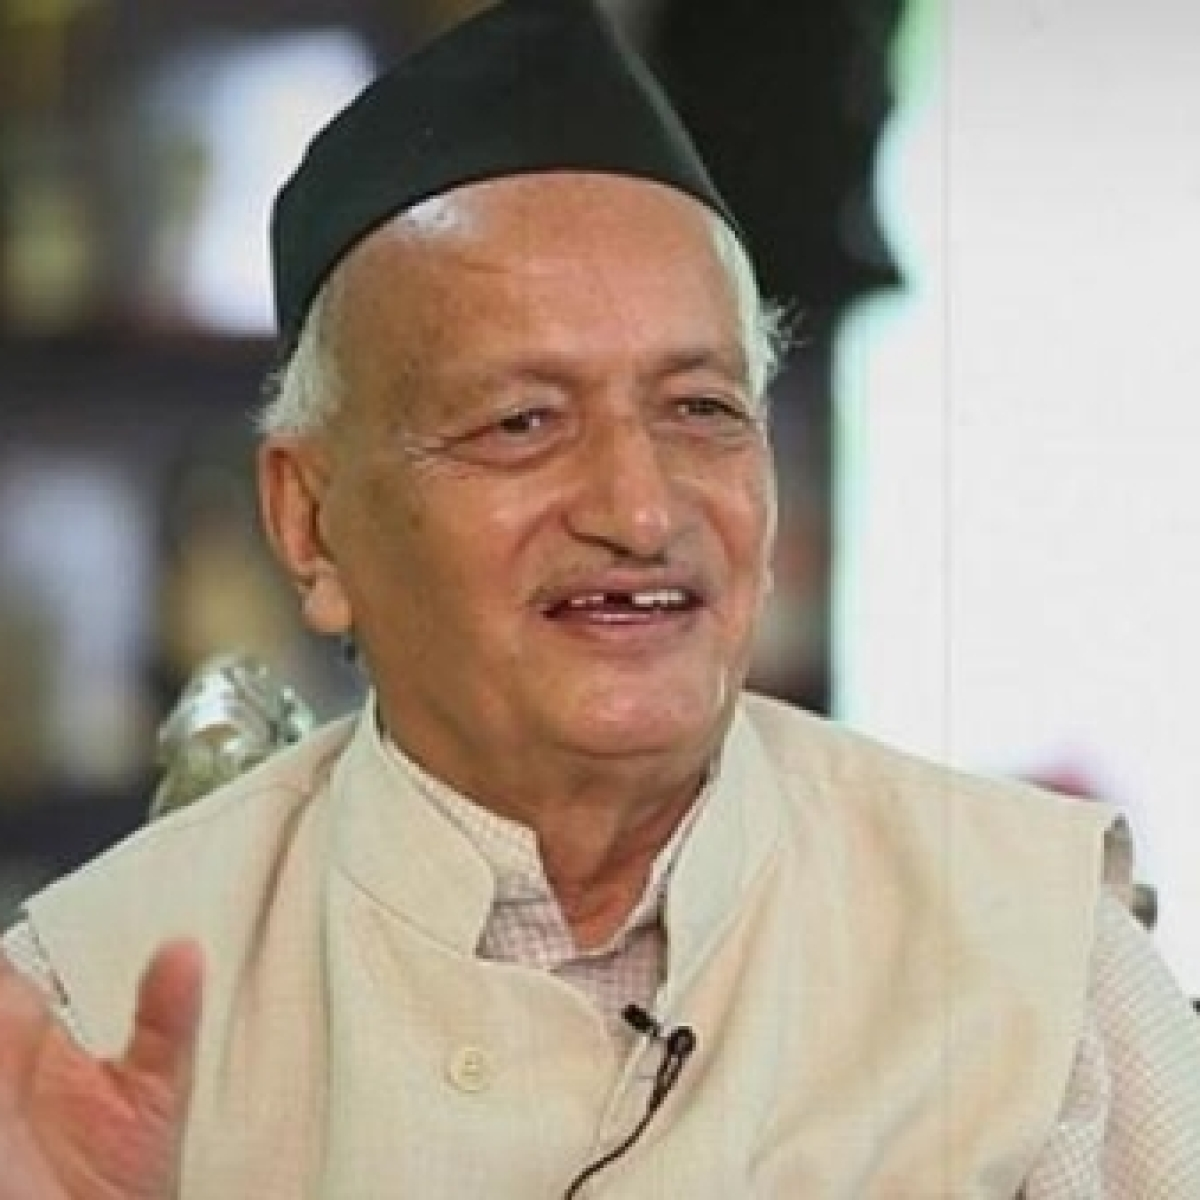 Maharashtra Governor Bhagat Singh Koshyari to consult Home Ministry and Attorney General